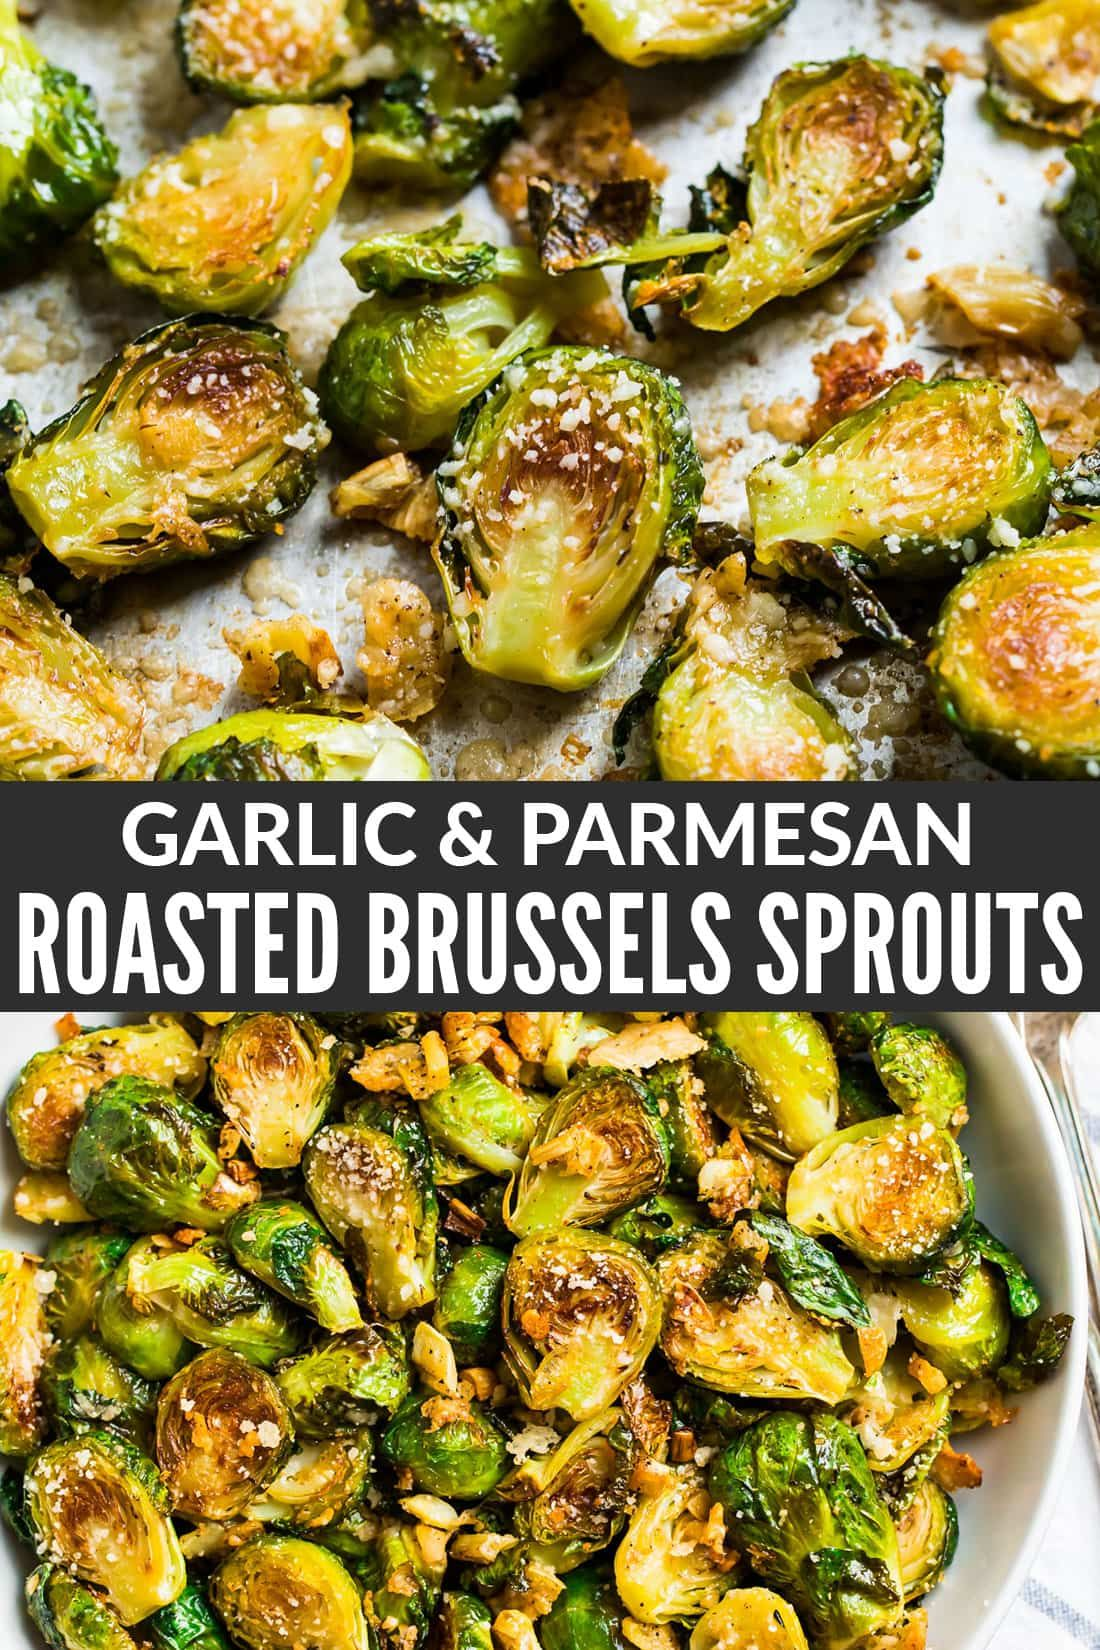 Oven Roasted Brussels Sprouts With Garlic And Paremsan Are